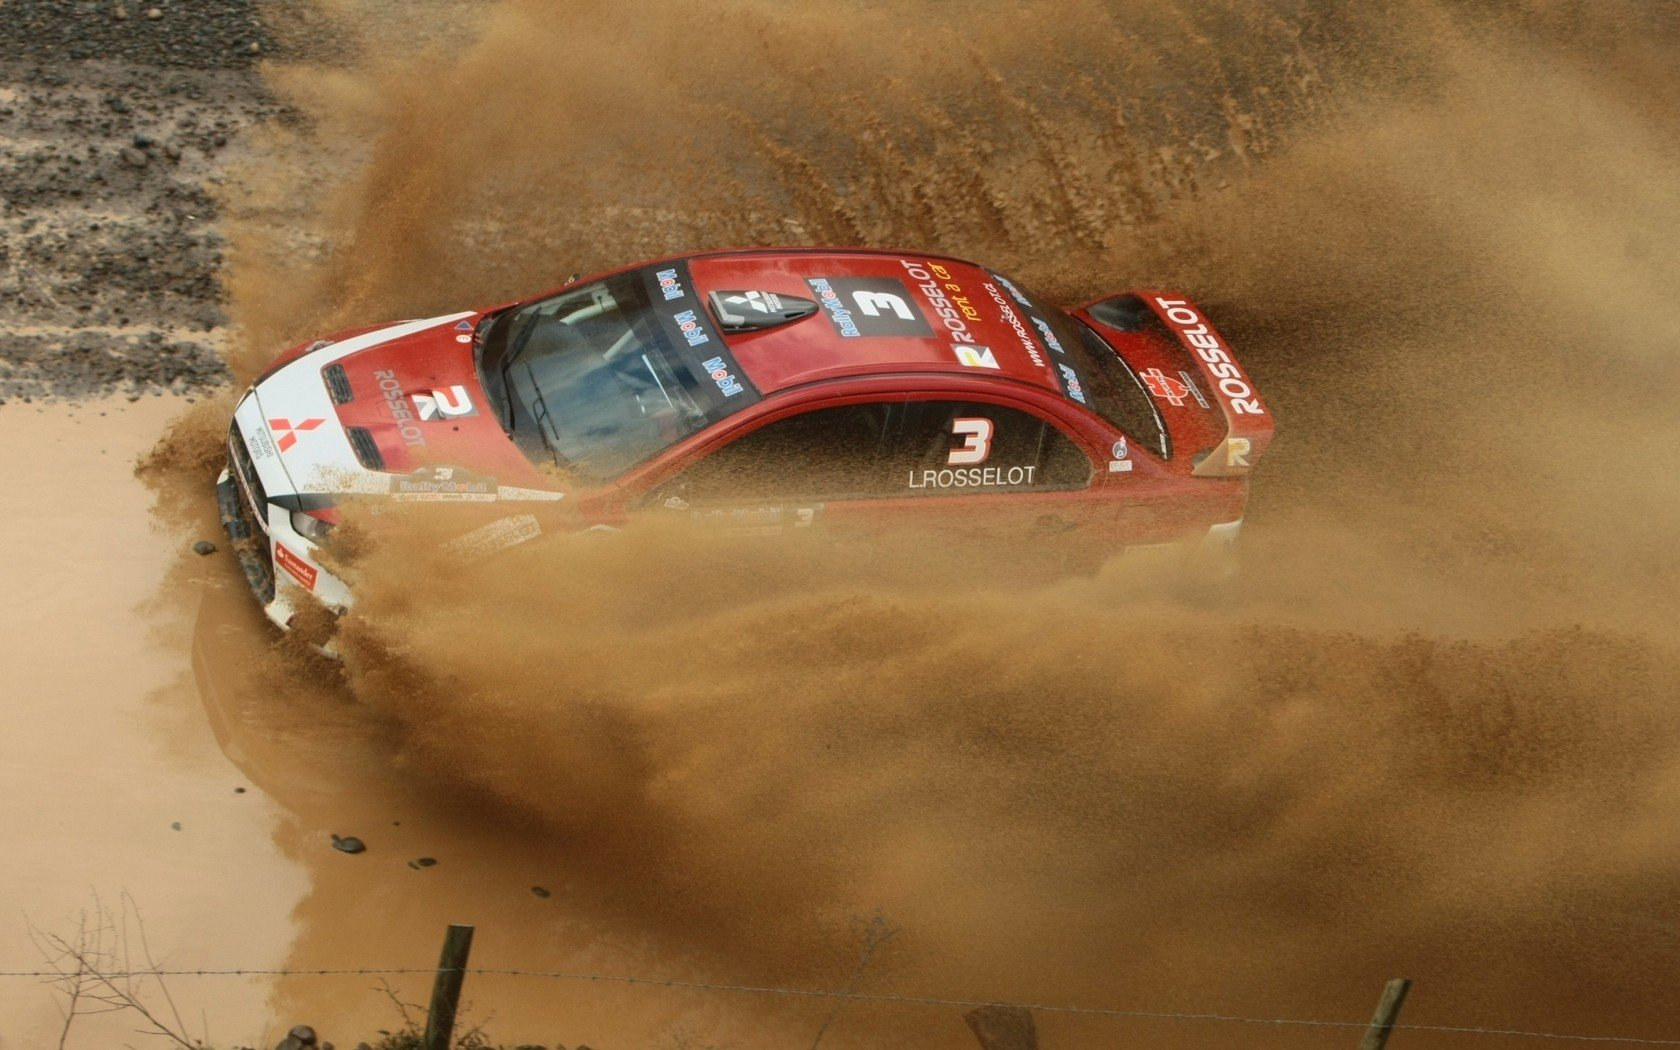 image with Mitsubishi Lancer Evolution In Mud Rally Hd Car Wallpaper 1680x1050